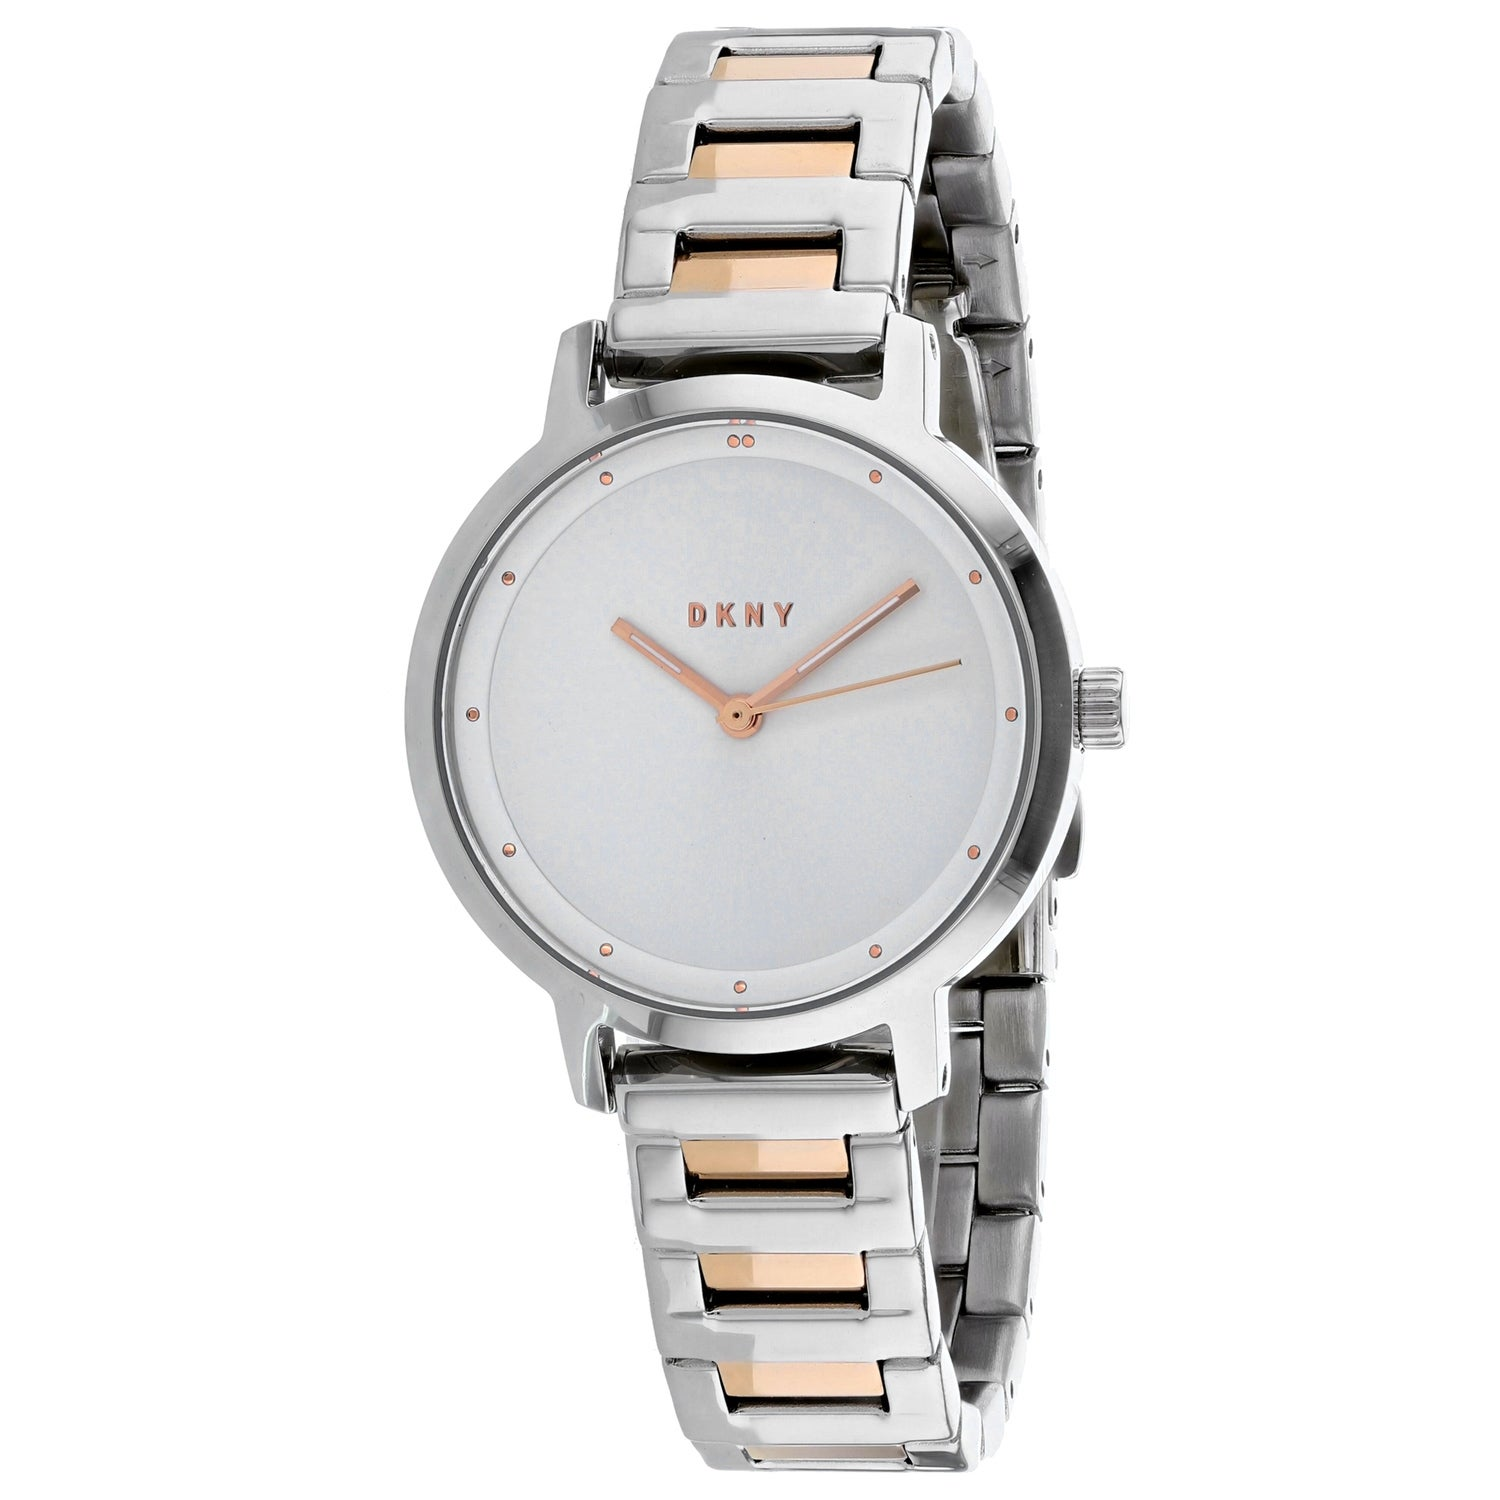 c46cc6d58 DKNY Watches | Shop our Best Jewelry & Watches Deals Online at Overstock